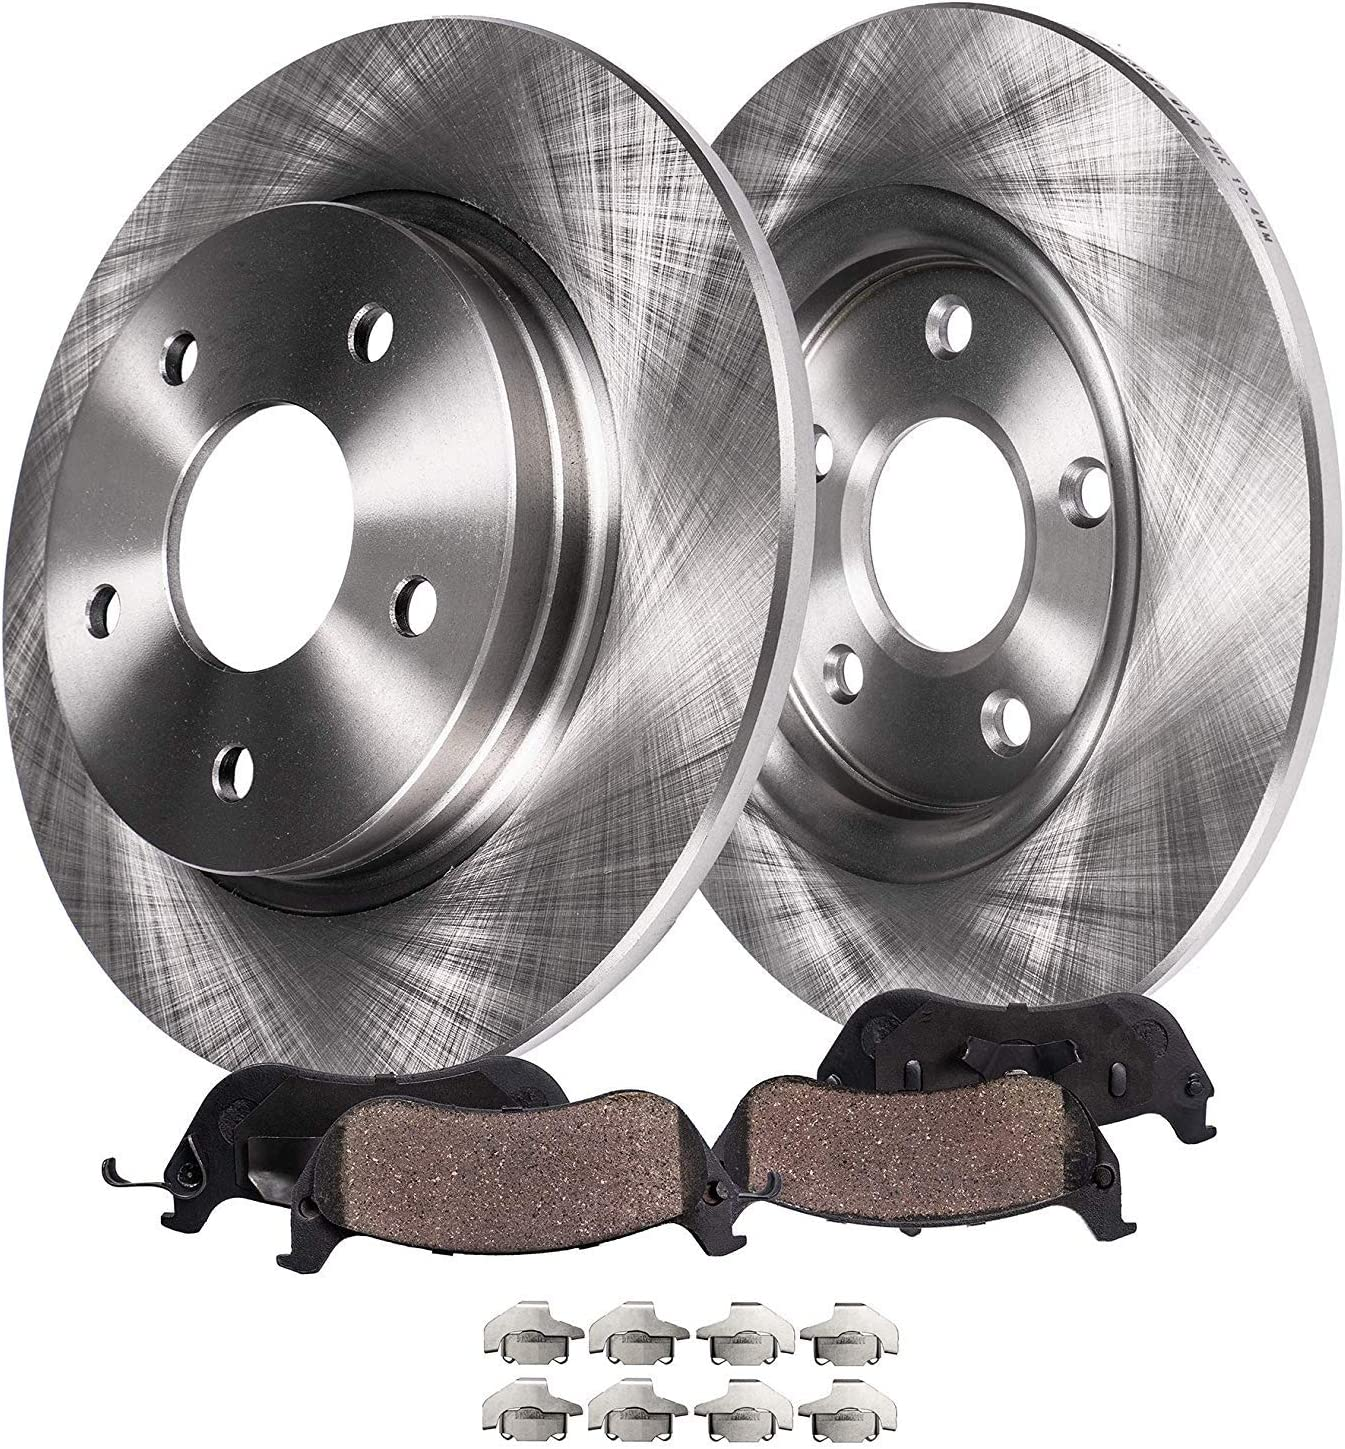 04-08 Grand Prix No GXP Detroit Axle 11-12 Impala Drilled /& Slotted Rear Brake Kit Rotors /& Brake Kit Pads w//Clips Hardware Kit for 05-08 Buick Allure 2005-2009 Buick LaCrosse